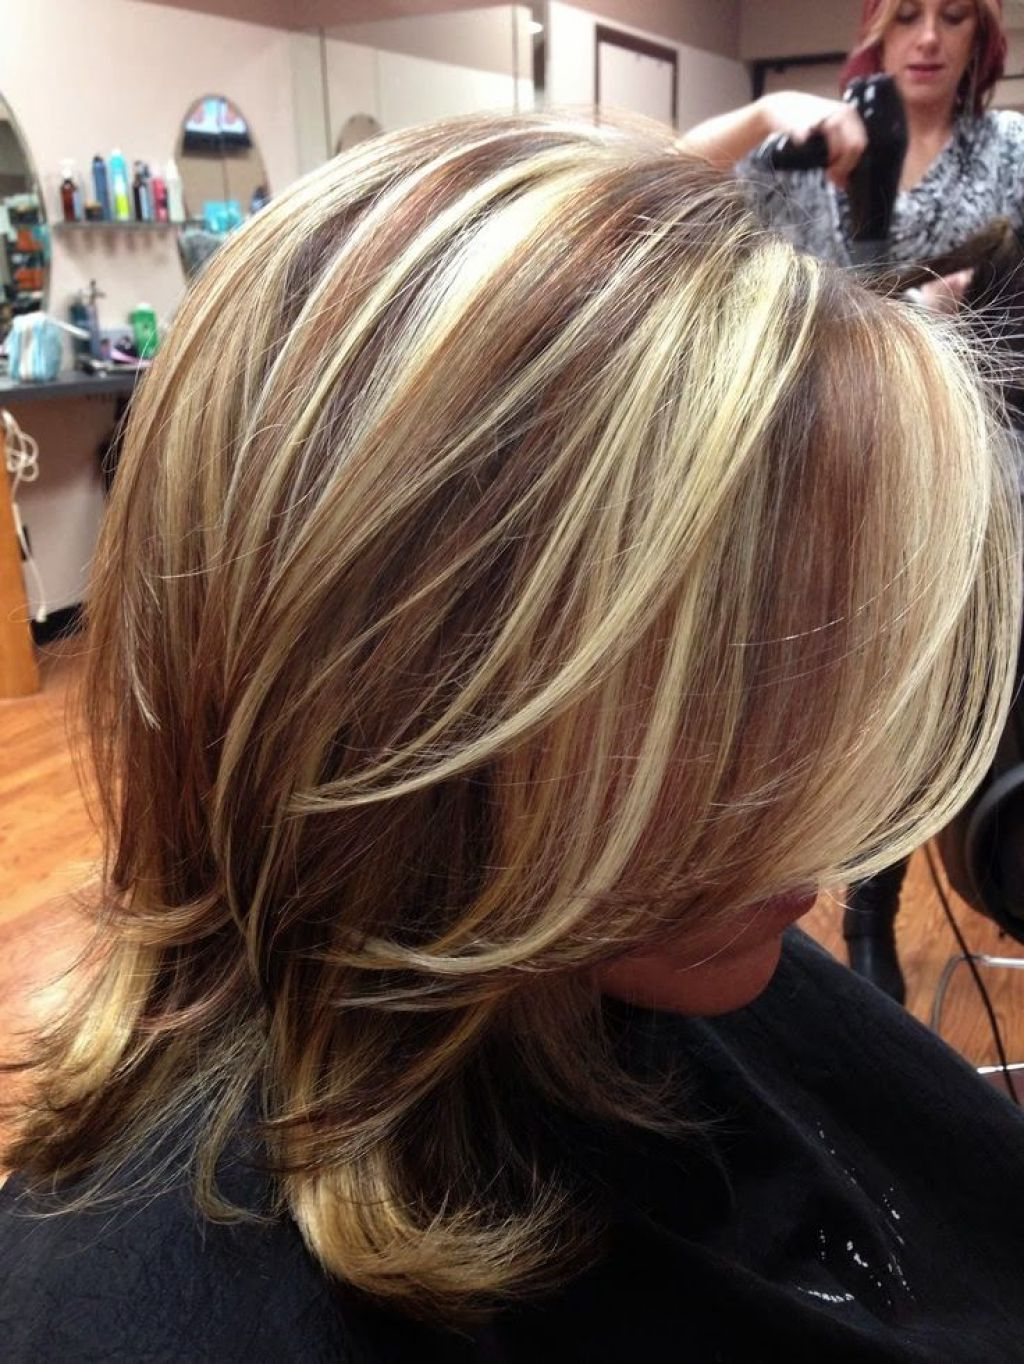 Medium Length Hairstyles With Blonde Highlights – Hairstyle For For Most Recent Medium Haircuts With Red Color (View 14 of 20)